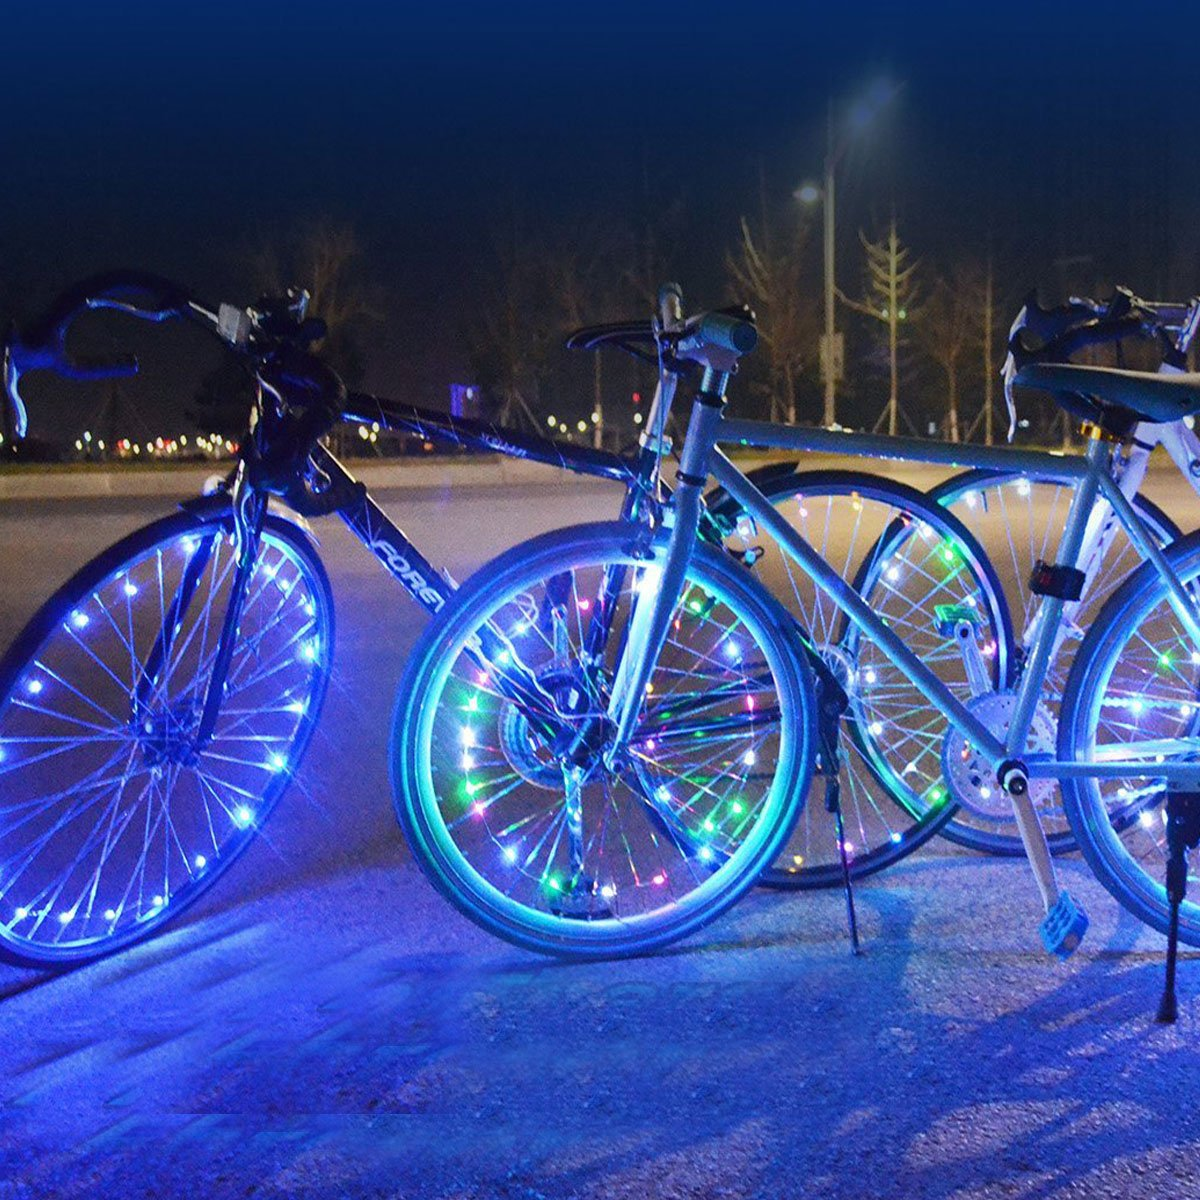 Bike Wheel Light, Ultra Bright LED Bicycle Tire Accessories Cycling Spoke Light String Waterproof - 2 Pack (White)